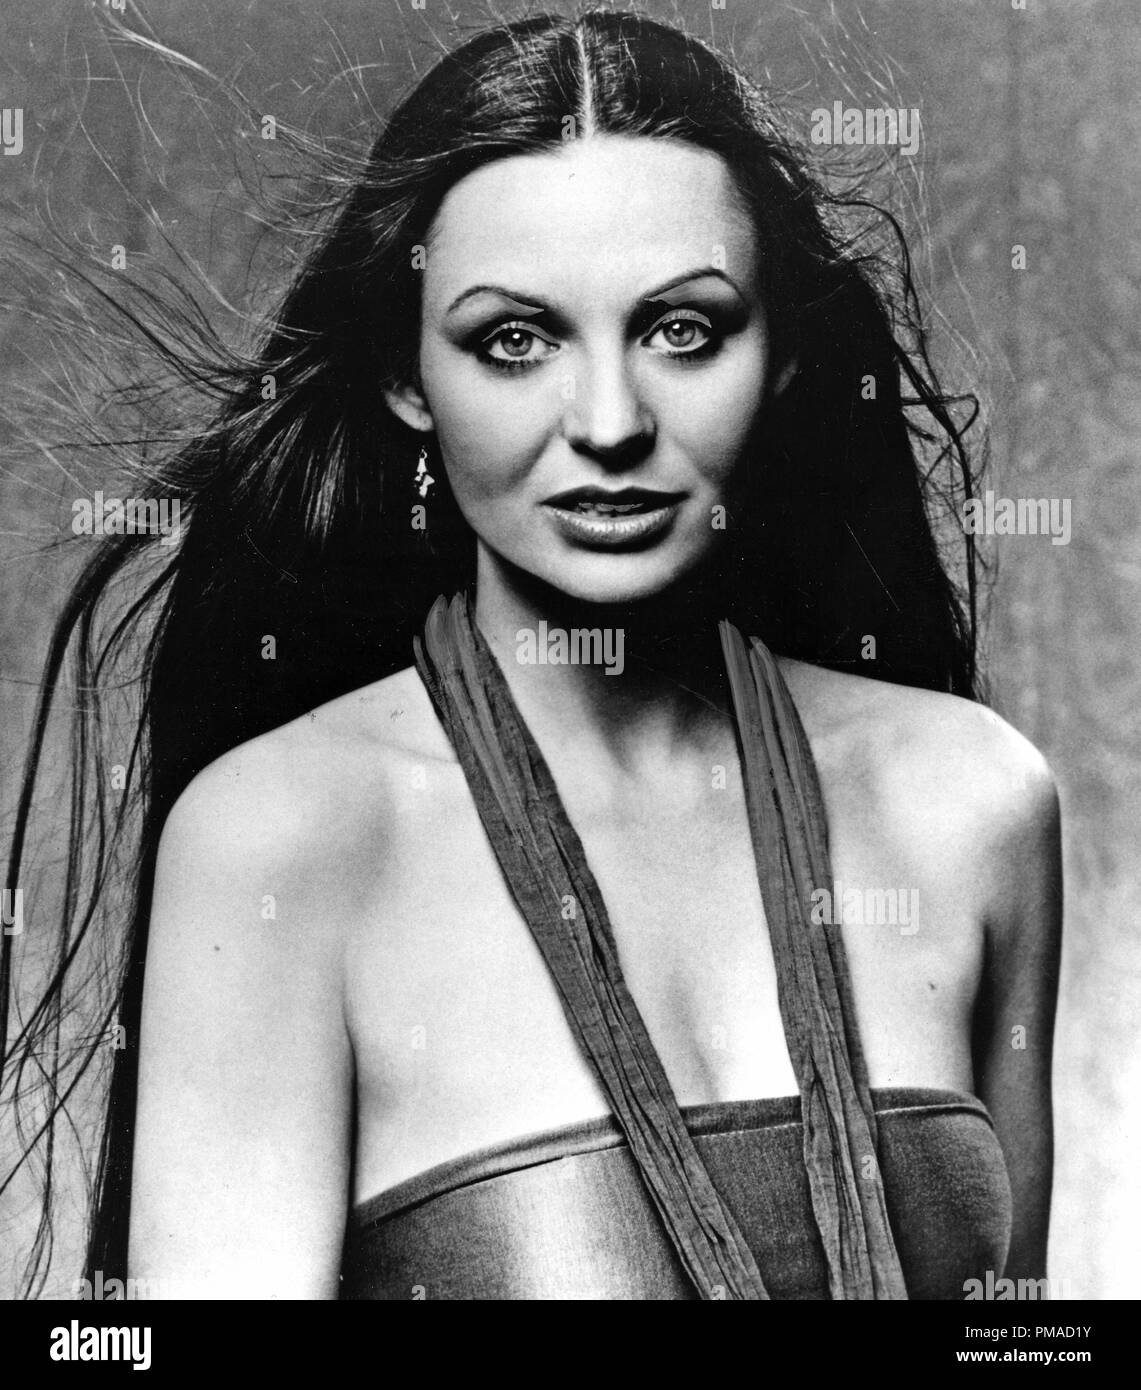 Crystal Gayle circa 1978    File Reference # 32368_566THA - Stock Image